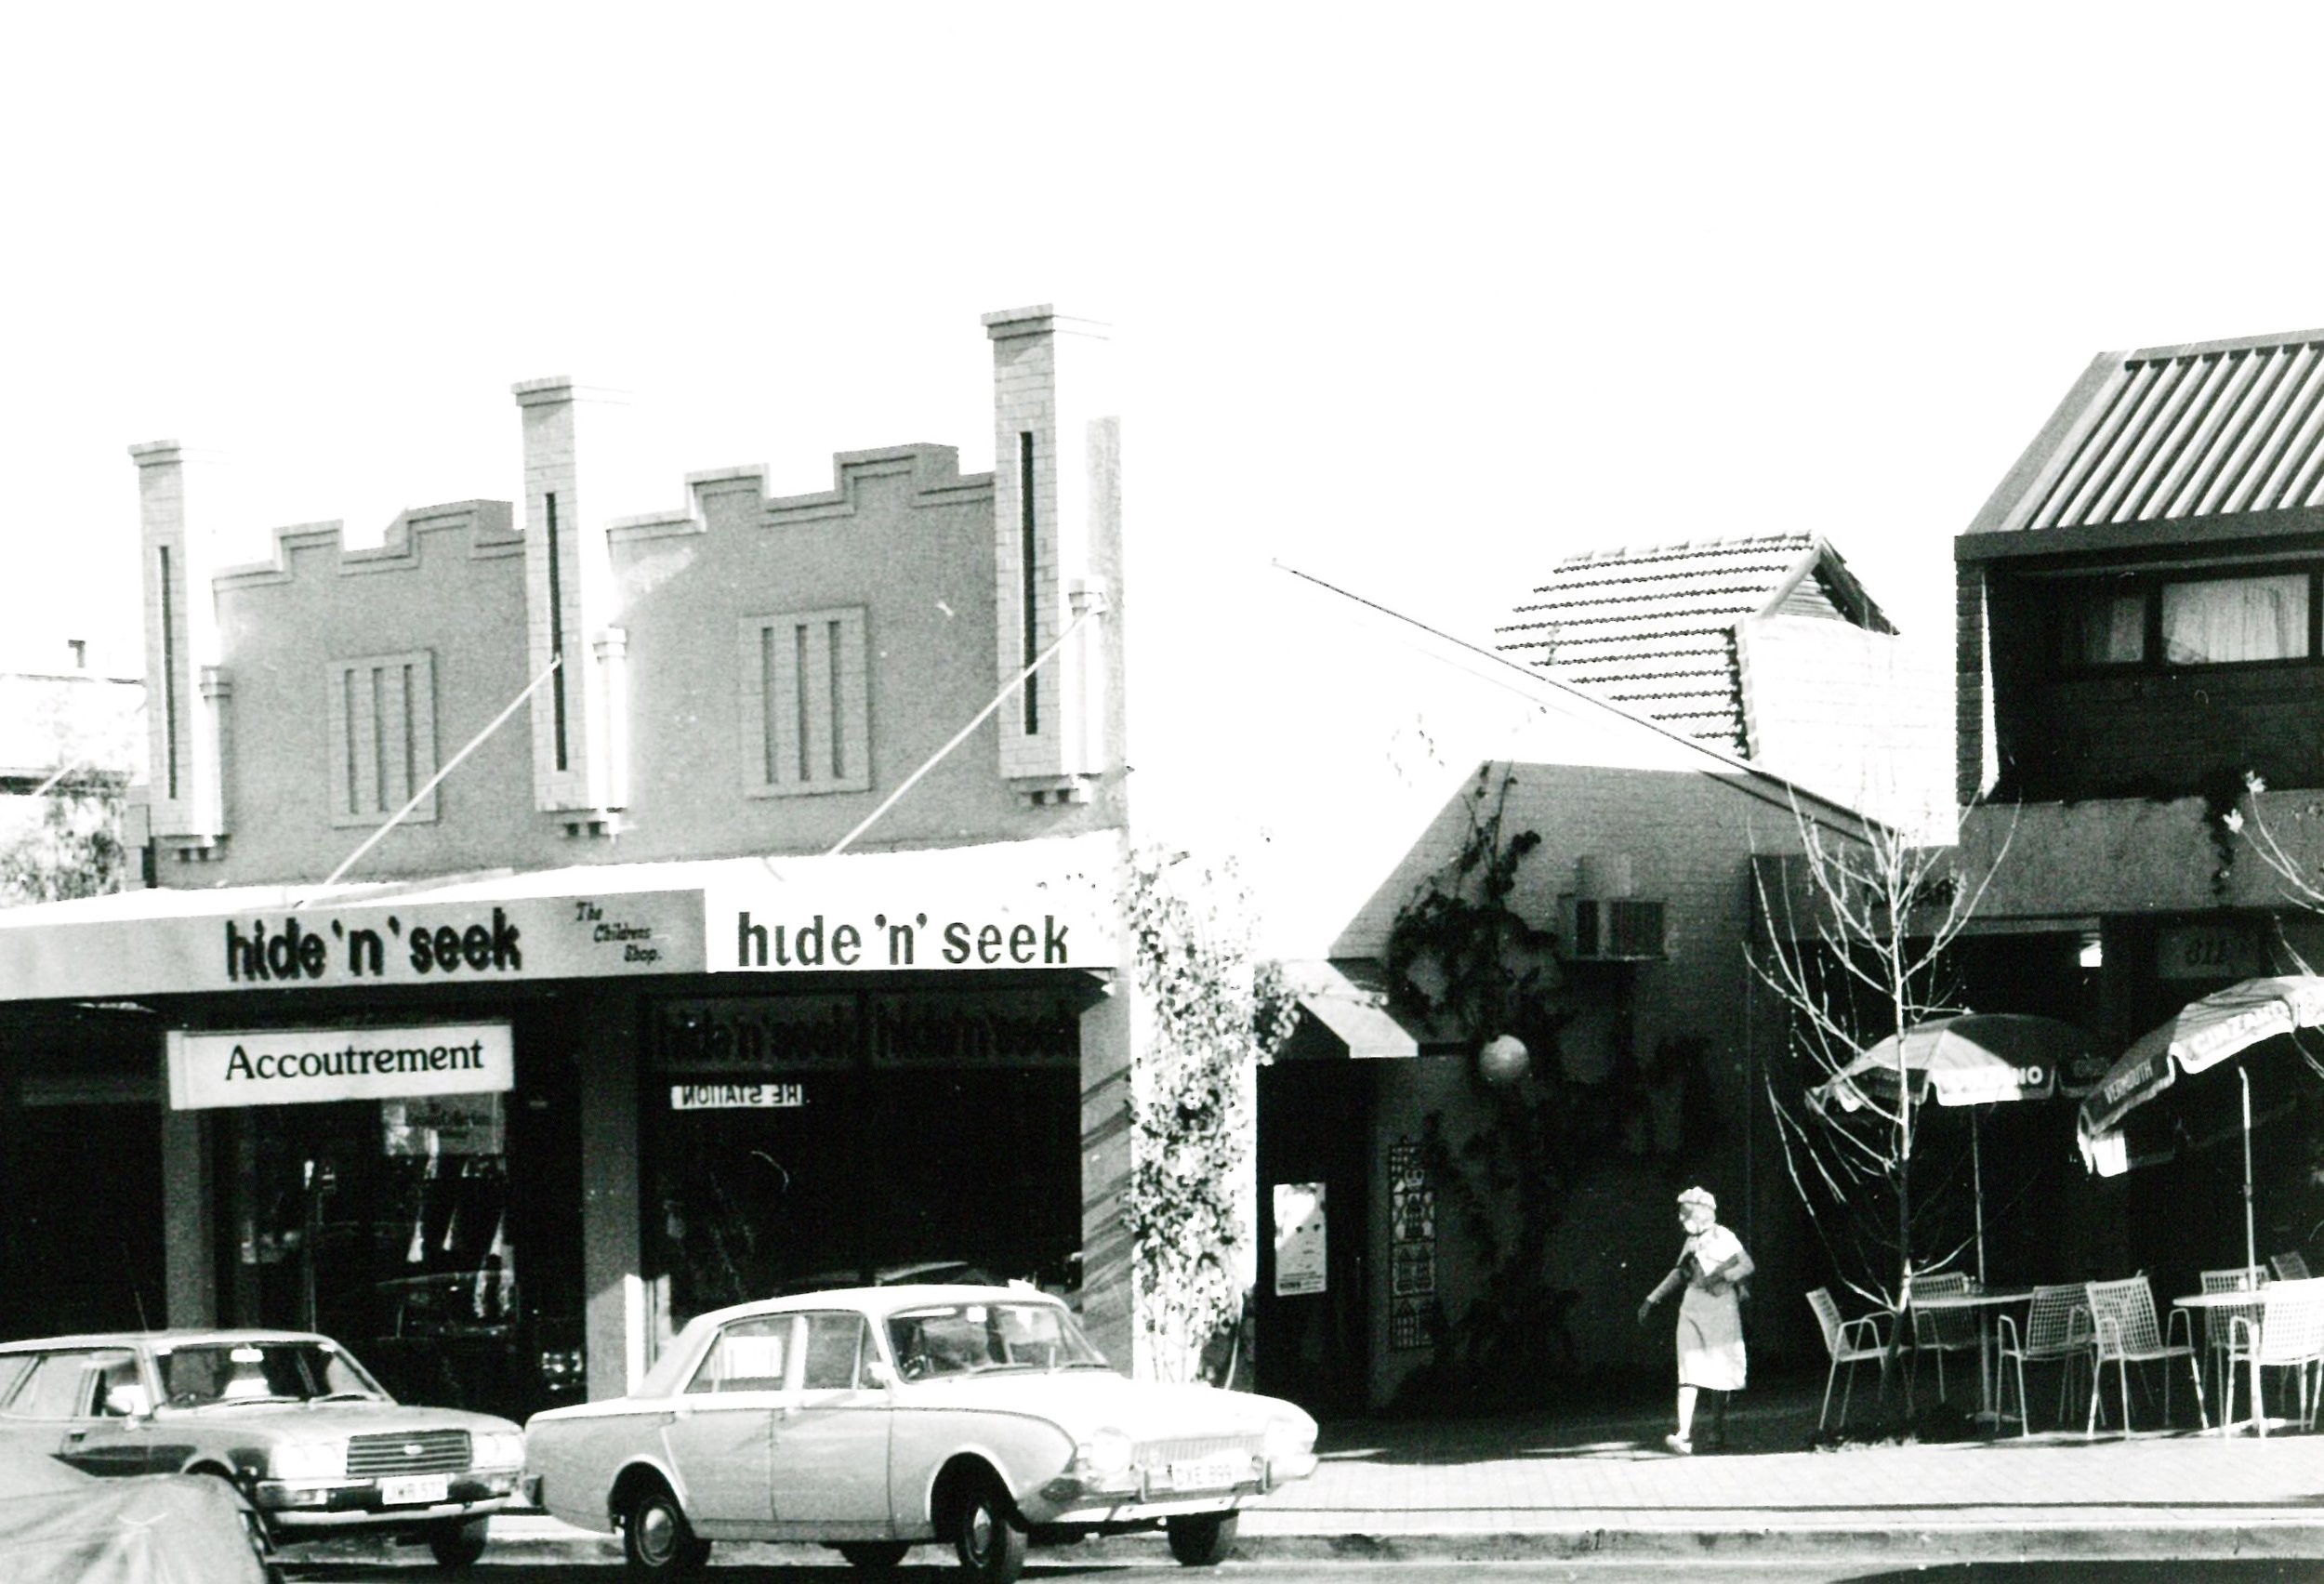 Accoutrement has been a permanent fixture on Mosman's Military Rd since the 1980s.